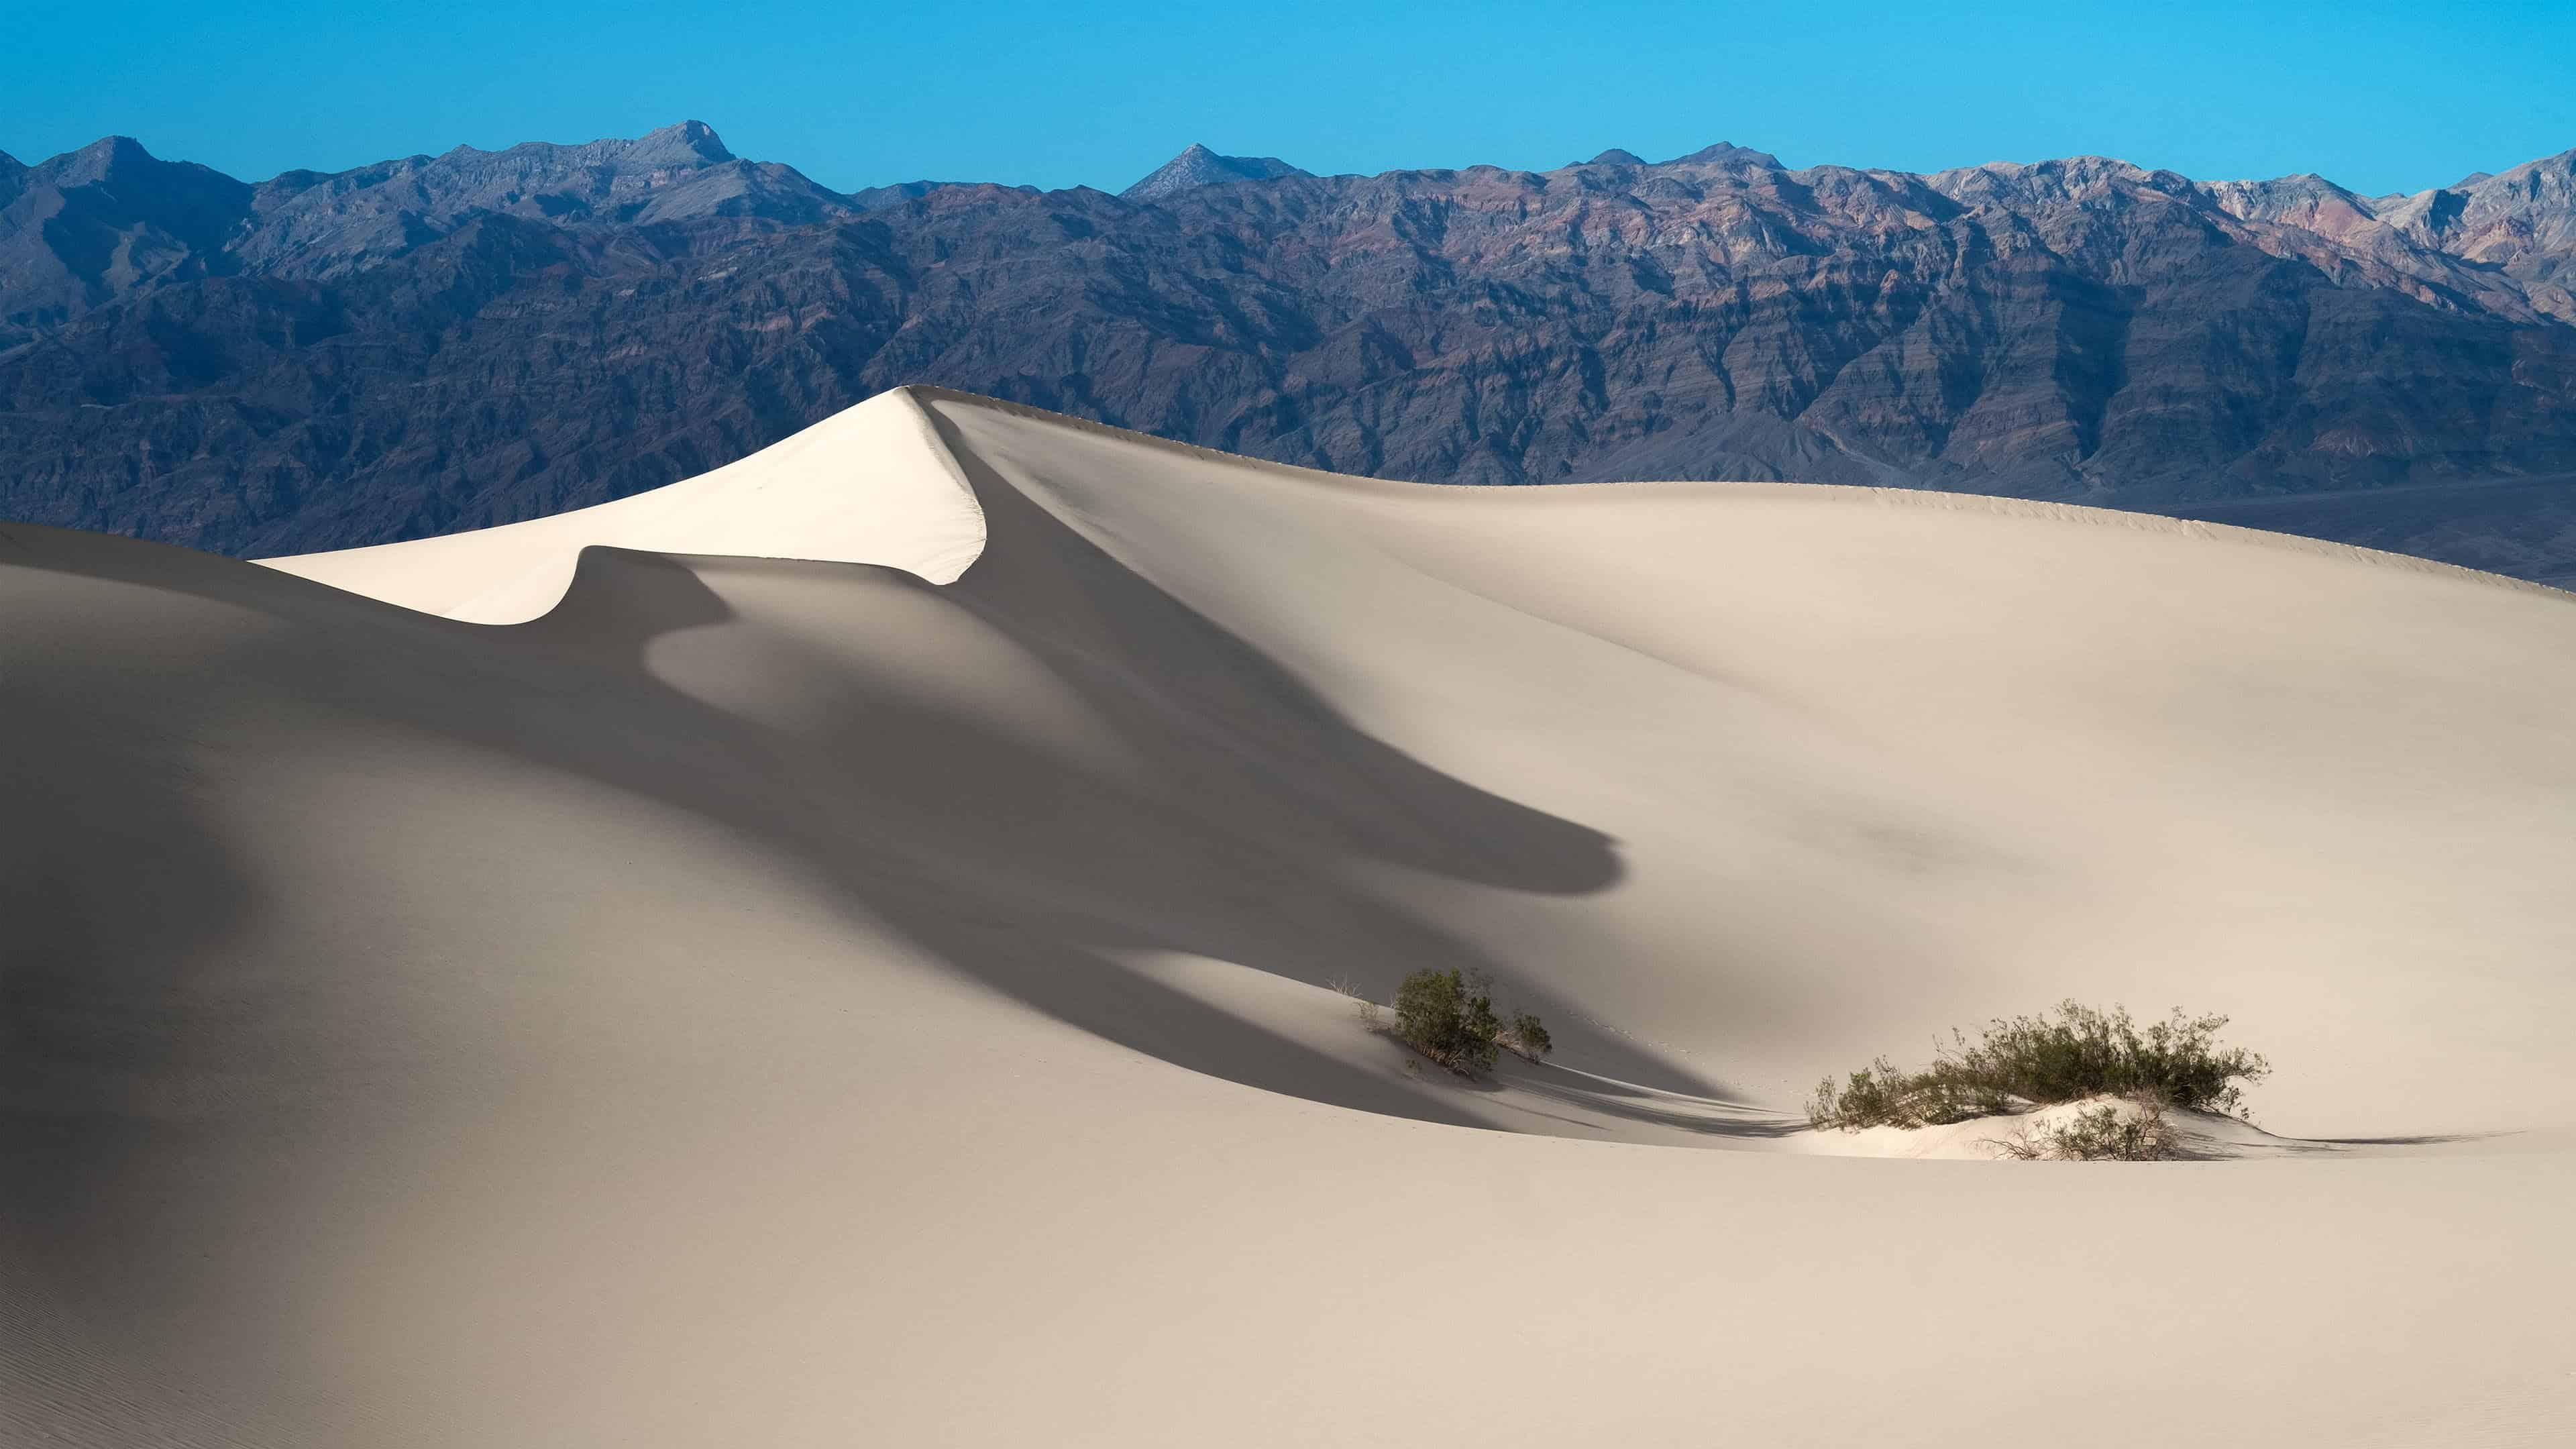 mesquite flat sand dunes death valley national park california united states uhd 4k wallpaper